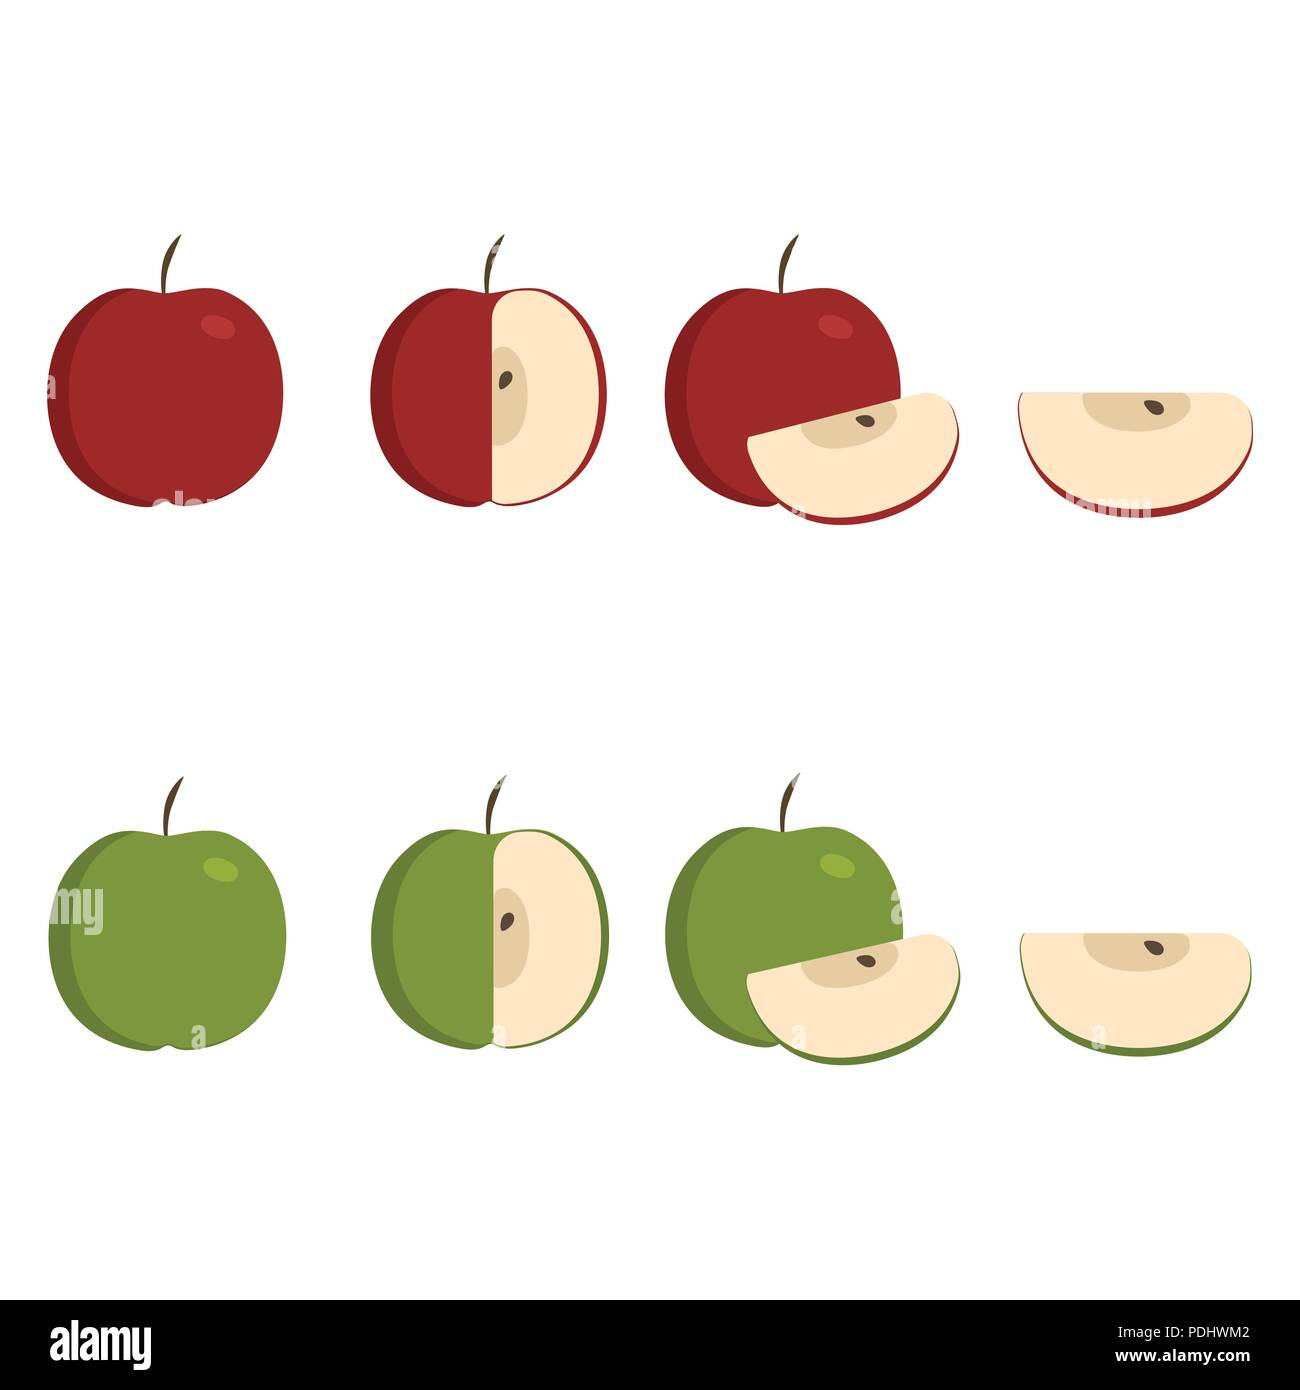 Green and red apple icons set in flat design  Whole, half and slice